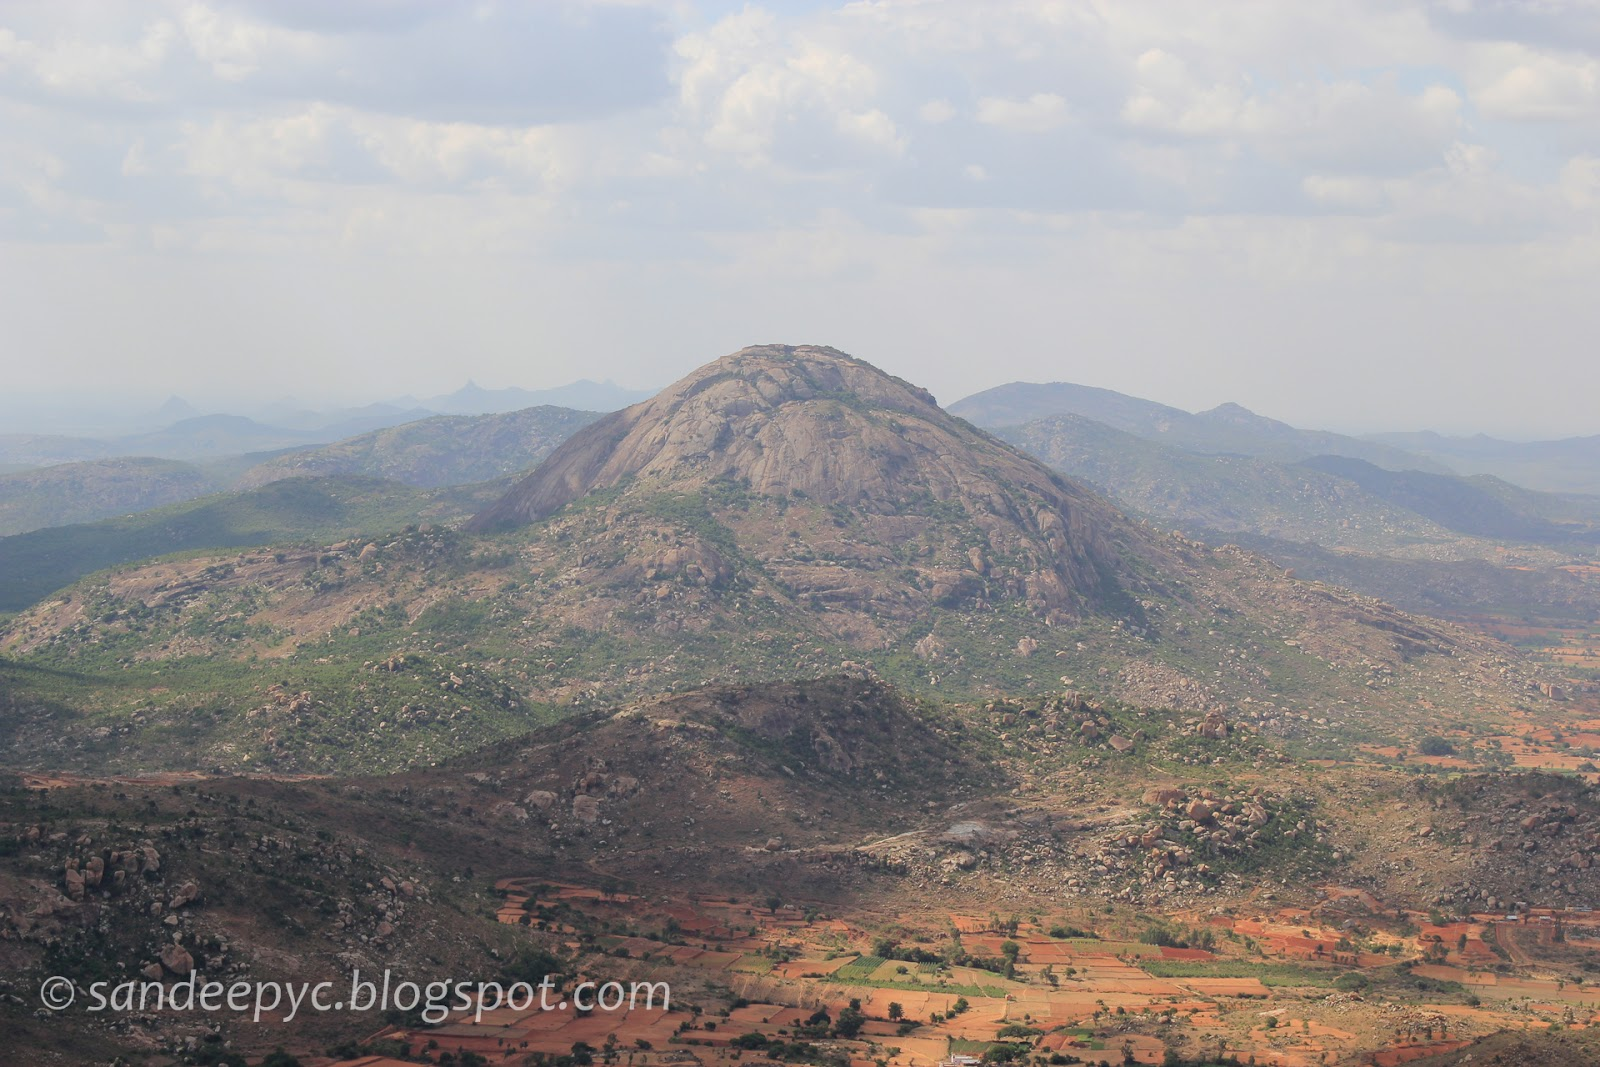 View around the Nandi hills